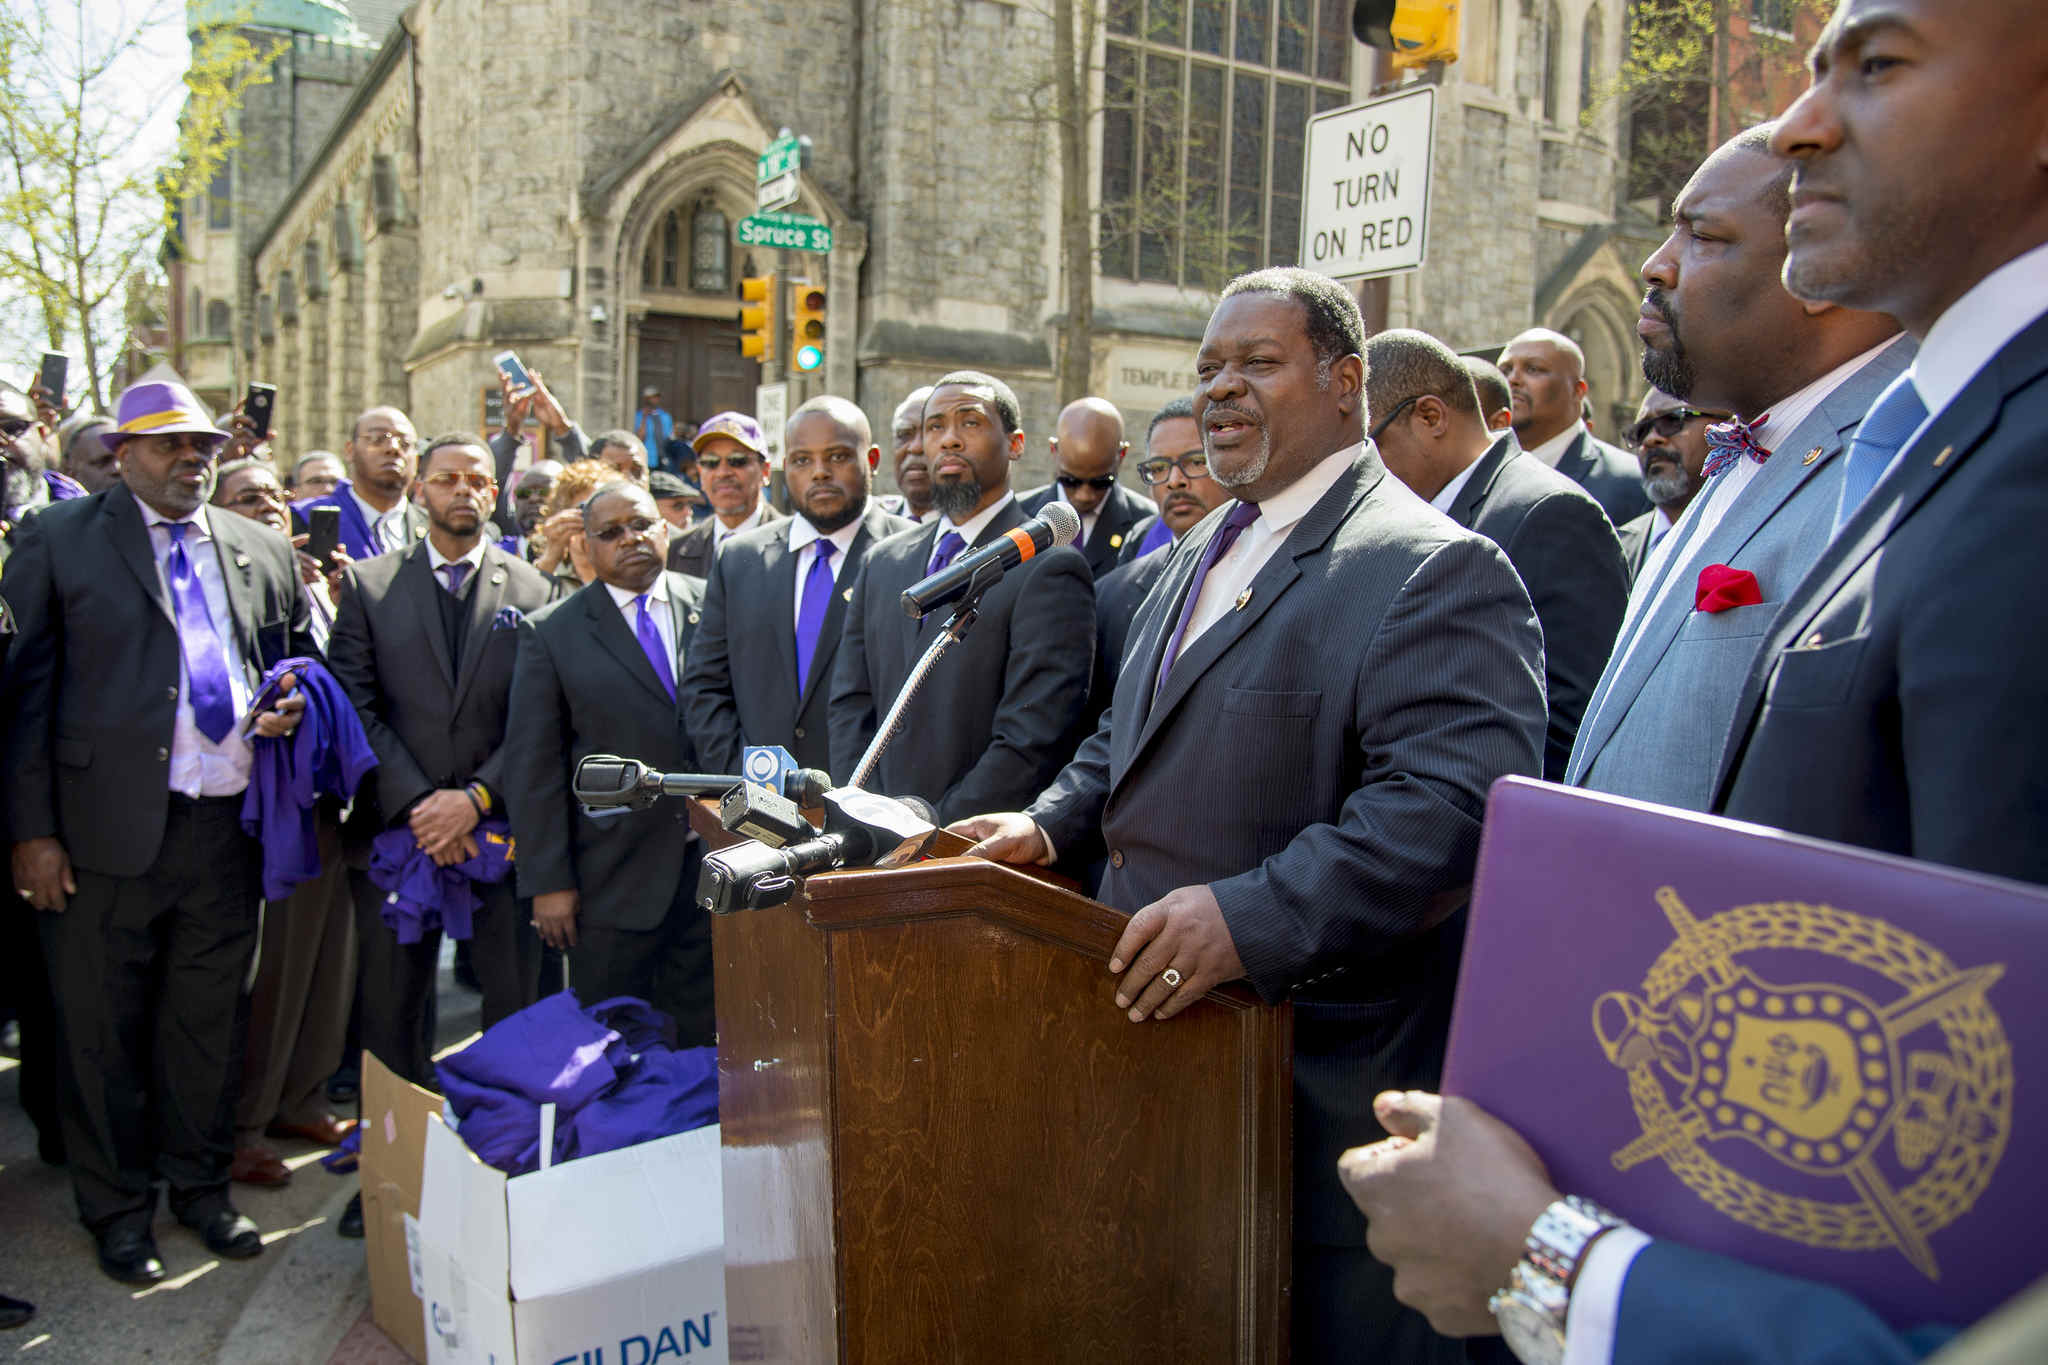 Antonio F. Knox Jr., Grand Basileus of Omega Psi Phi, speaks outside the Starbucks where fraternity brother Rashon Nelson was arrested this month.